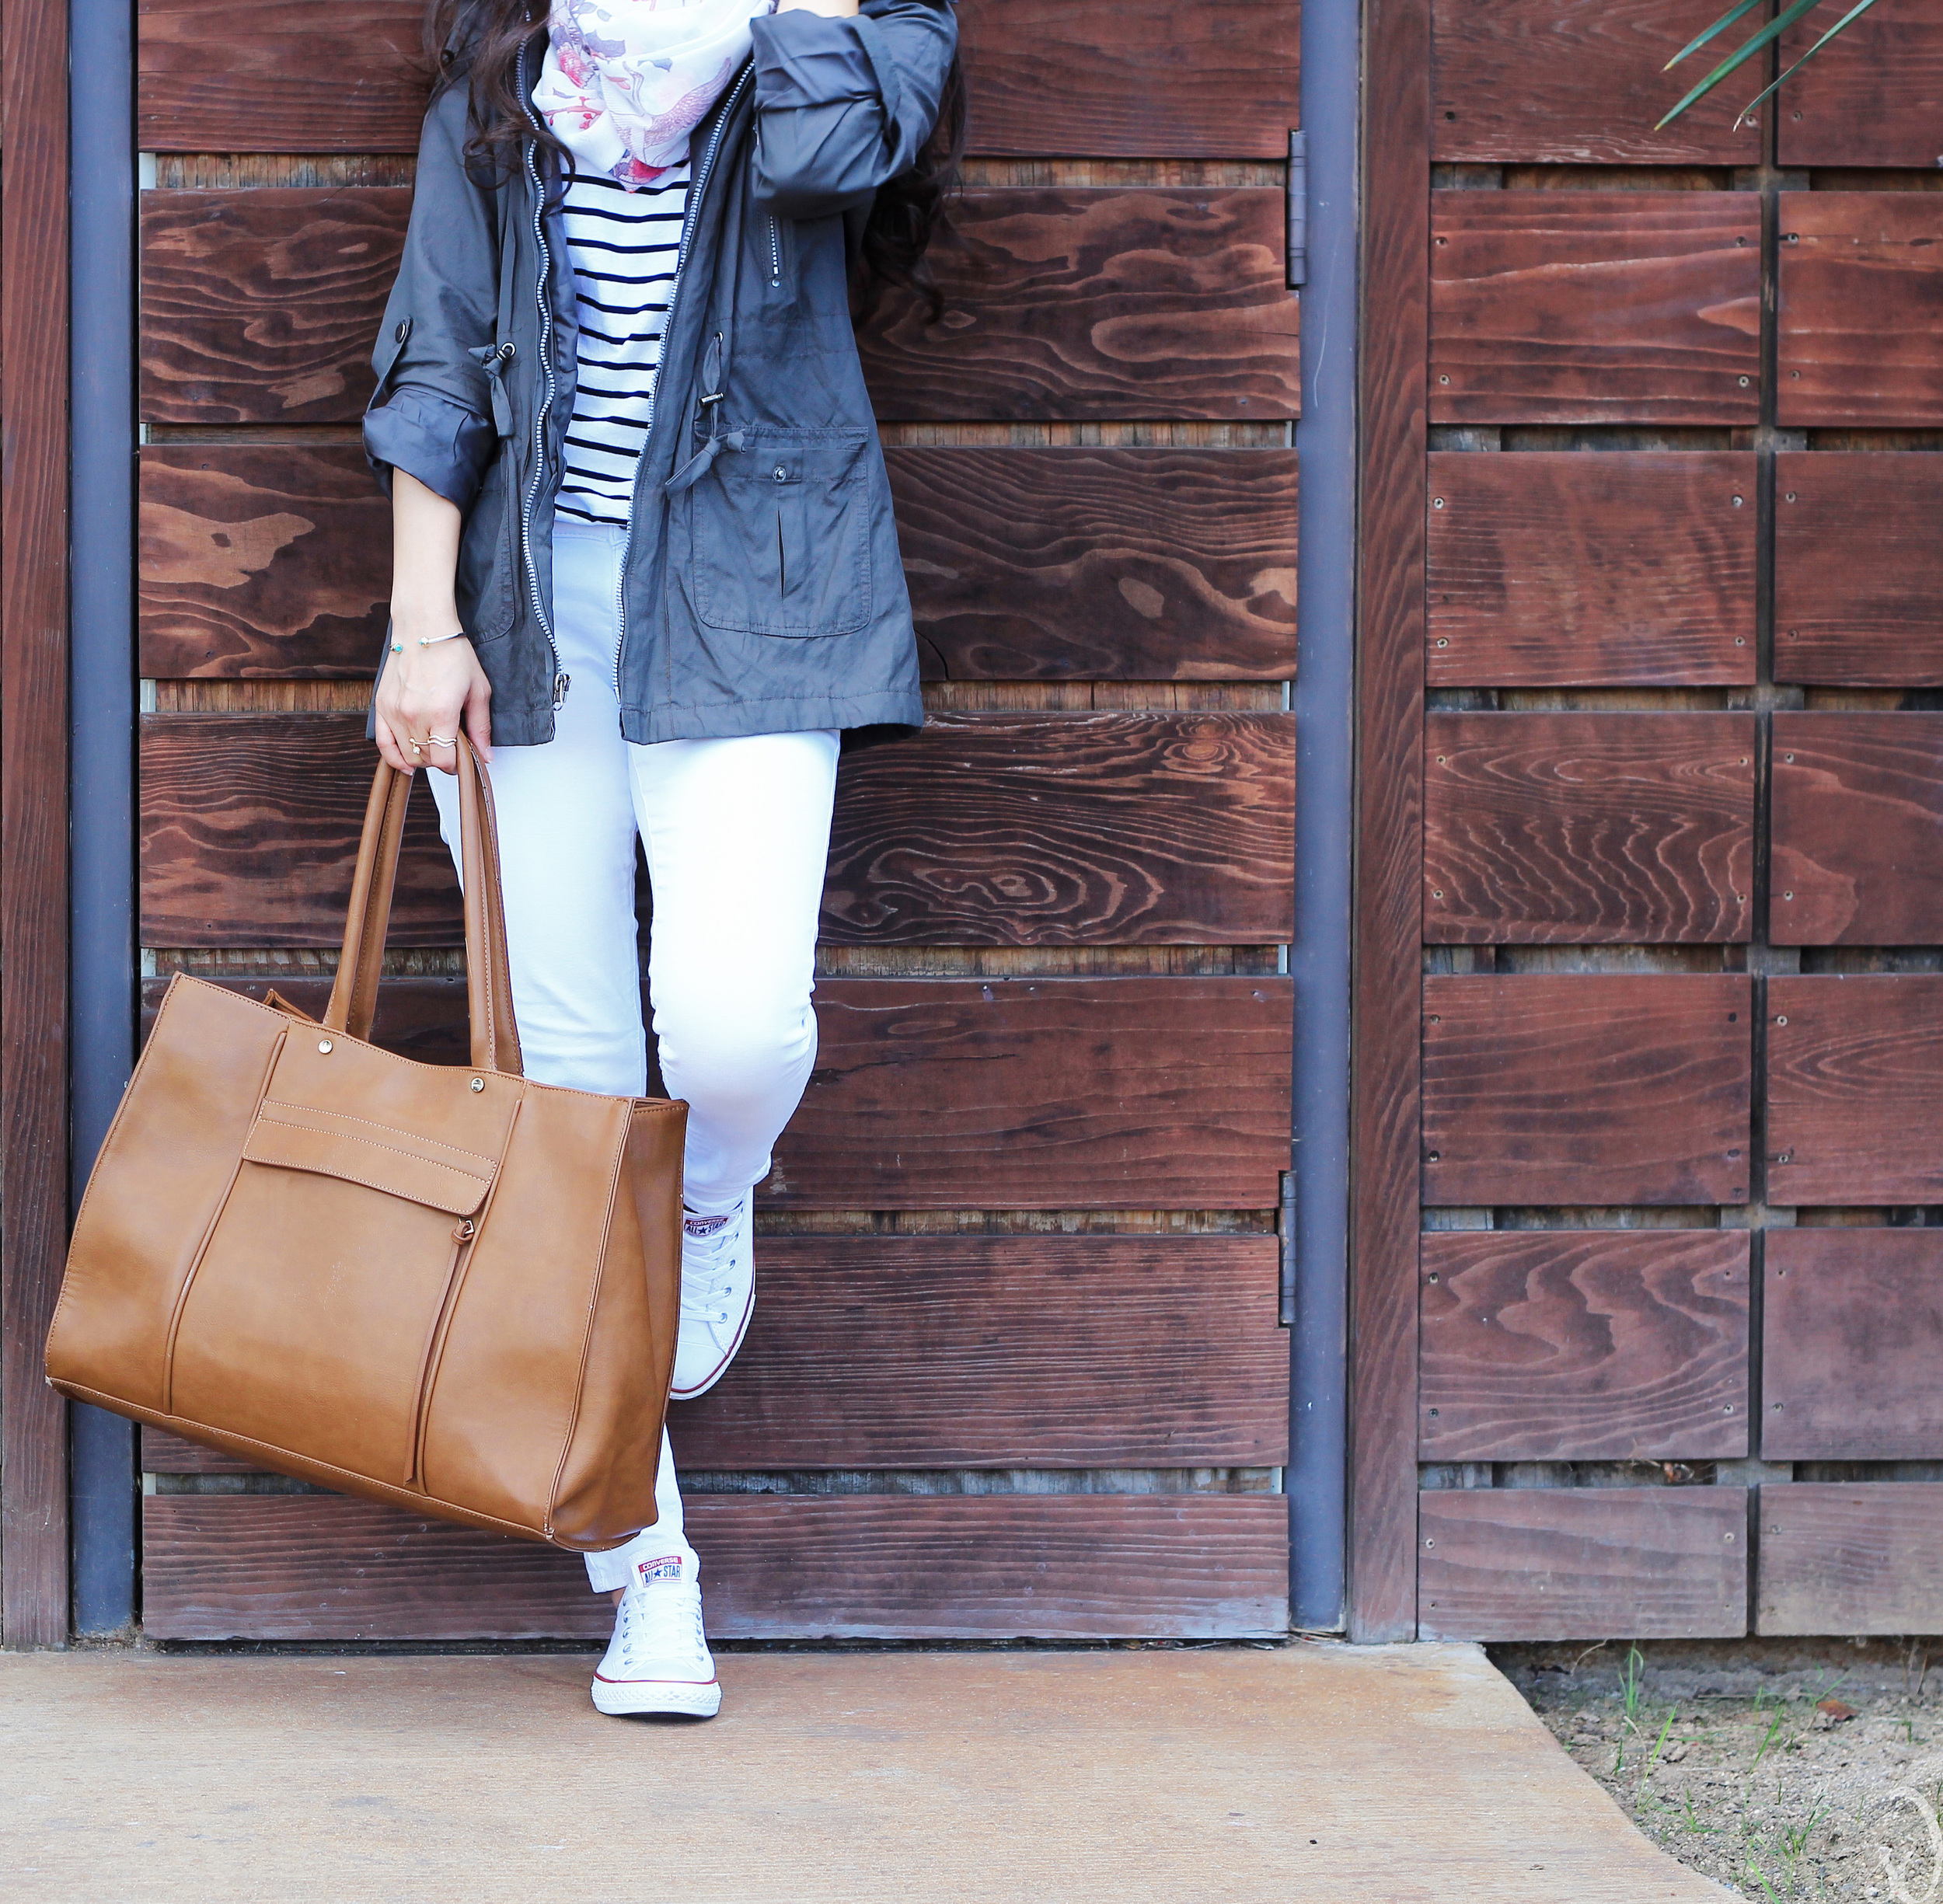 Converse, white denim, travel style, road trip, utility army green jacket, scarf, stripes, brown tote